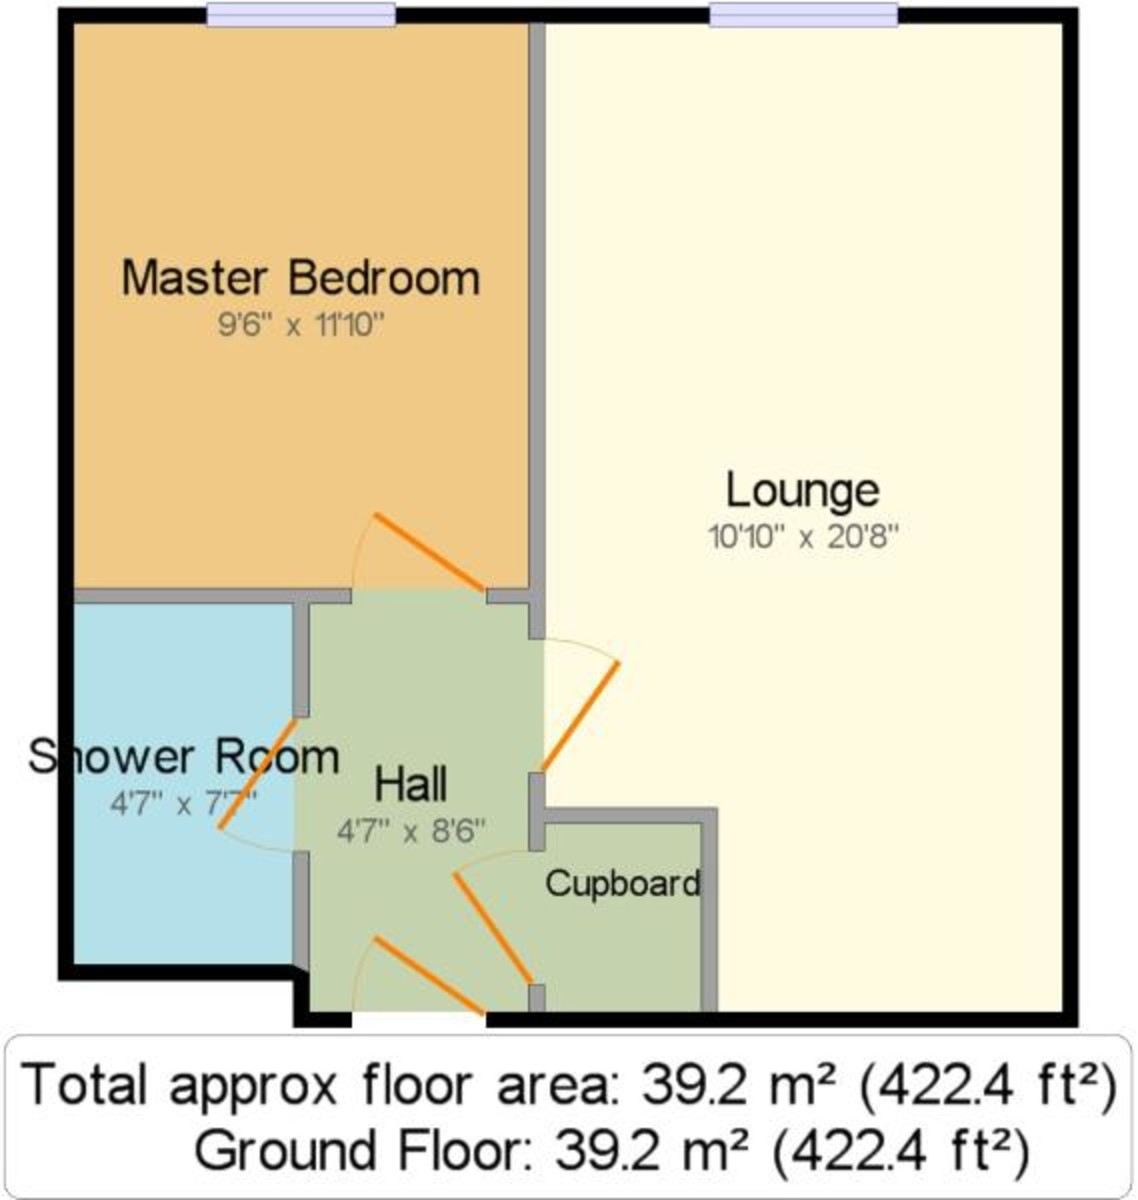 Canal Wharf, 18 Waterfront Walk floorplan 1 of 1